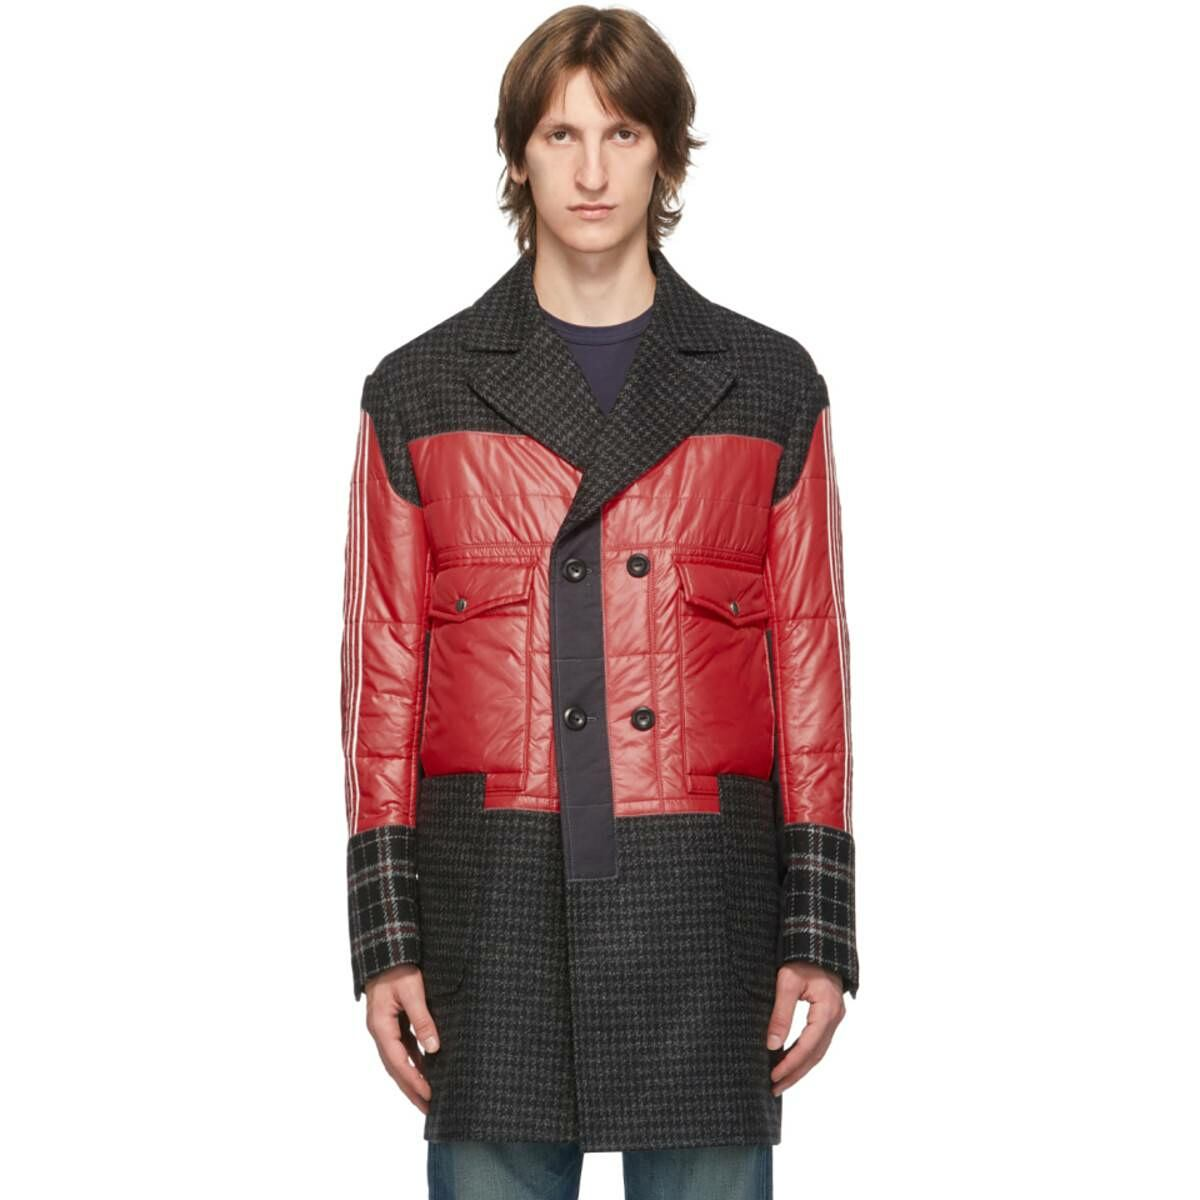 Junya Watanabe Red Nylon and Wool Coat Ssense USA MEN Men FASHION Mens COATS